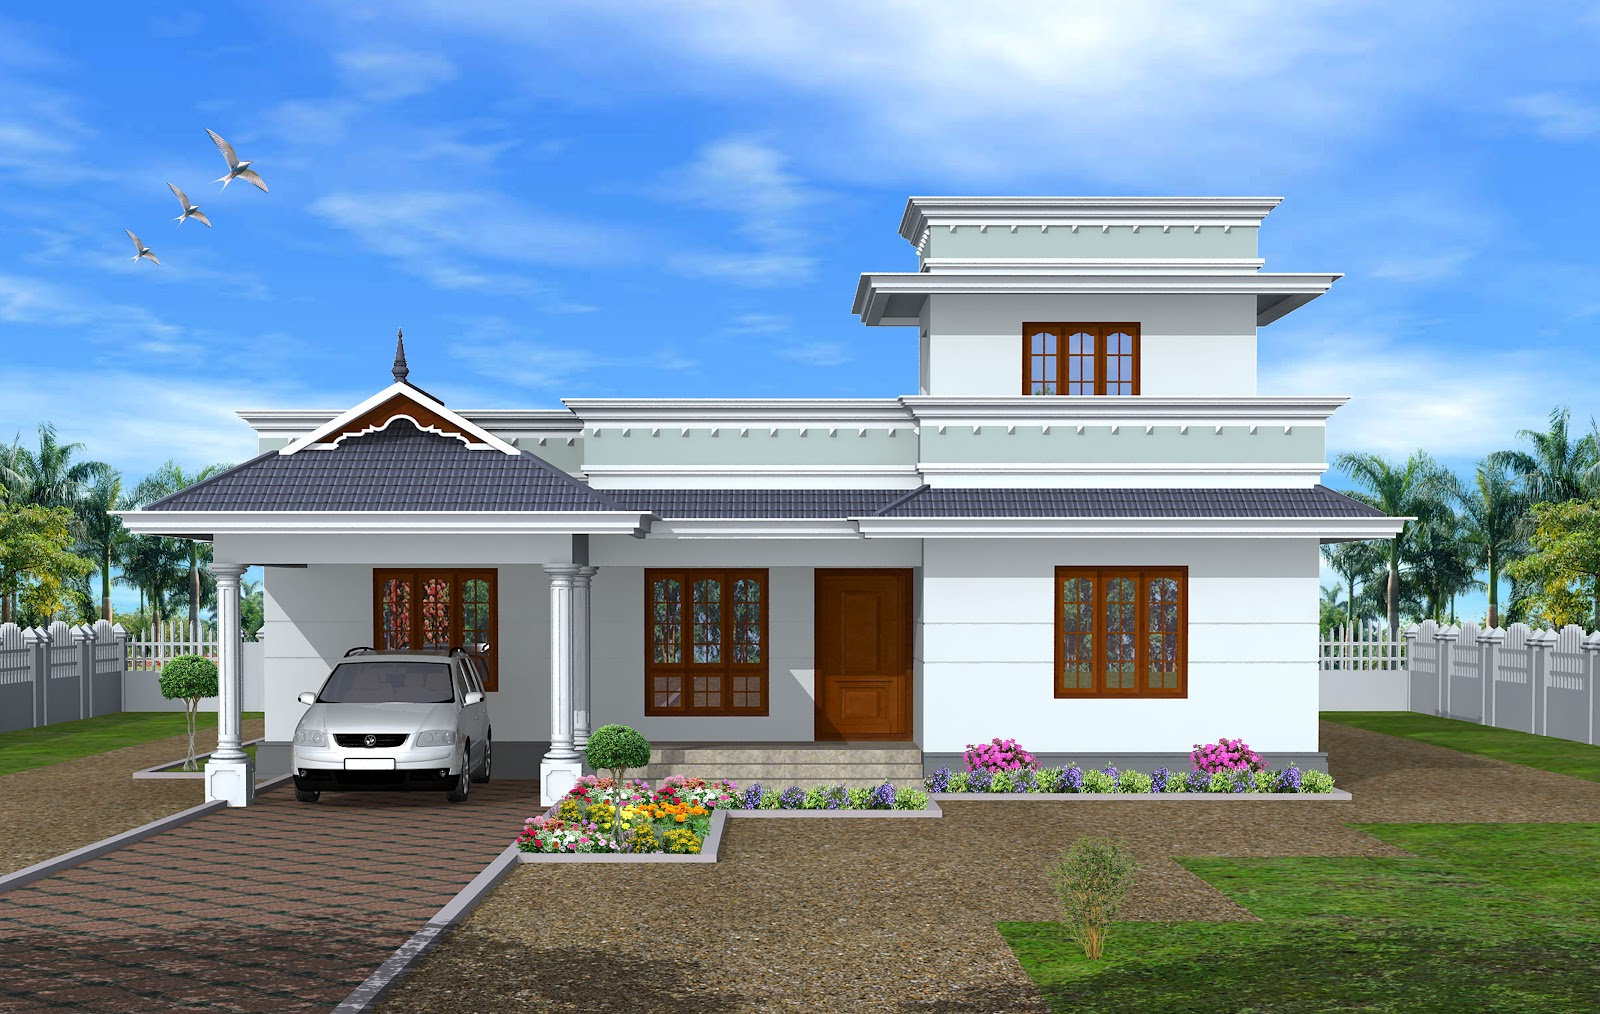 Green homes construction single floor kerala model house 1966 - Kerala exterior model homes ...